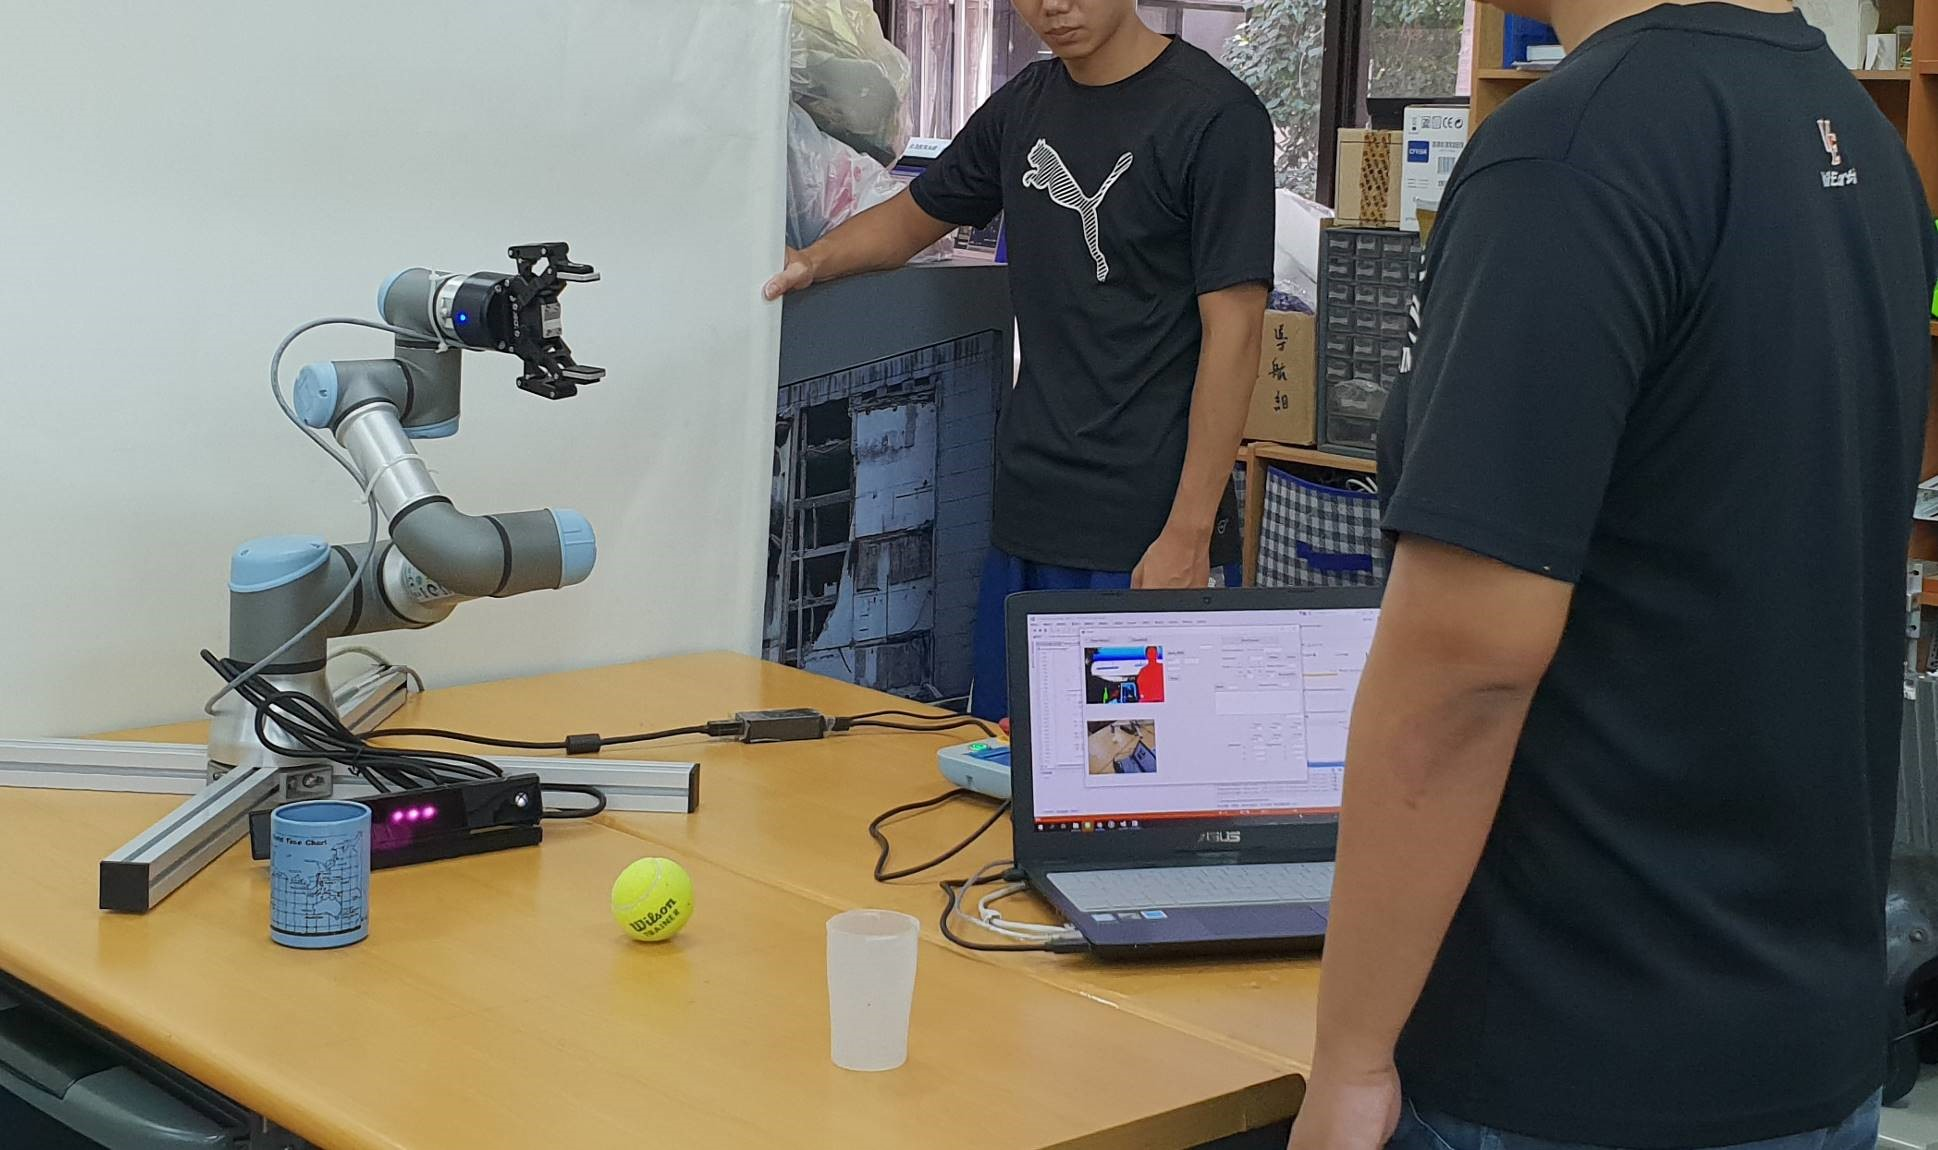 Development of Learning from Human Demonstration Robot